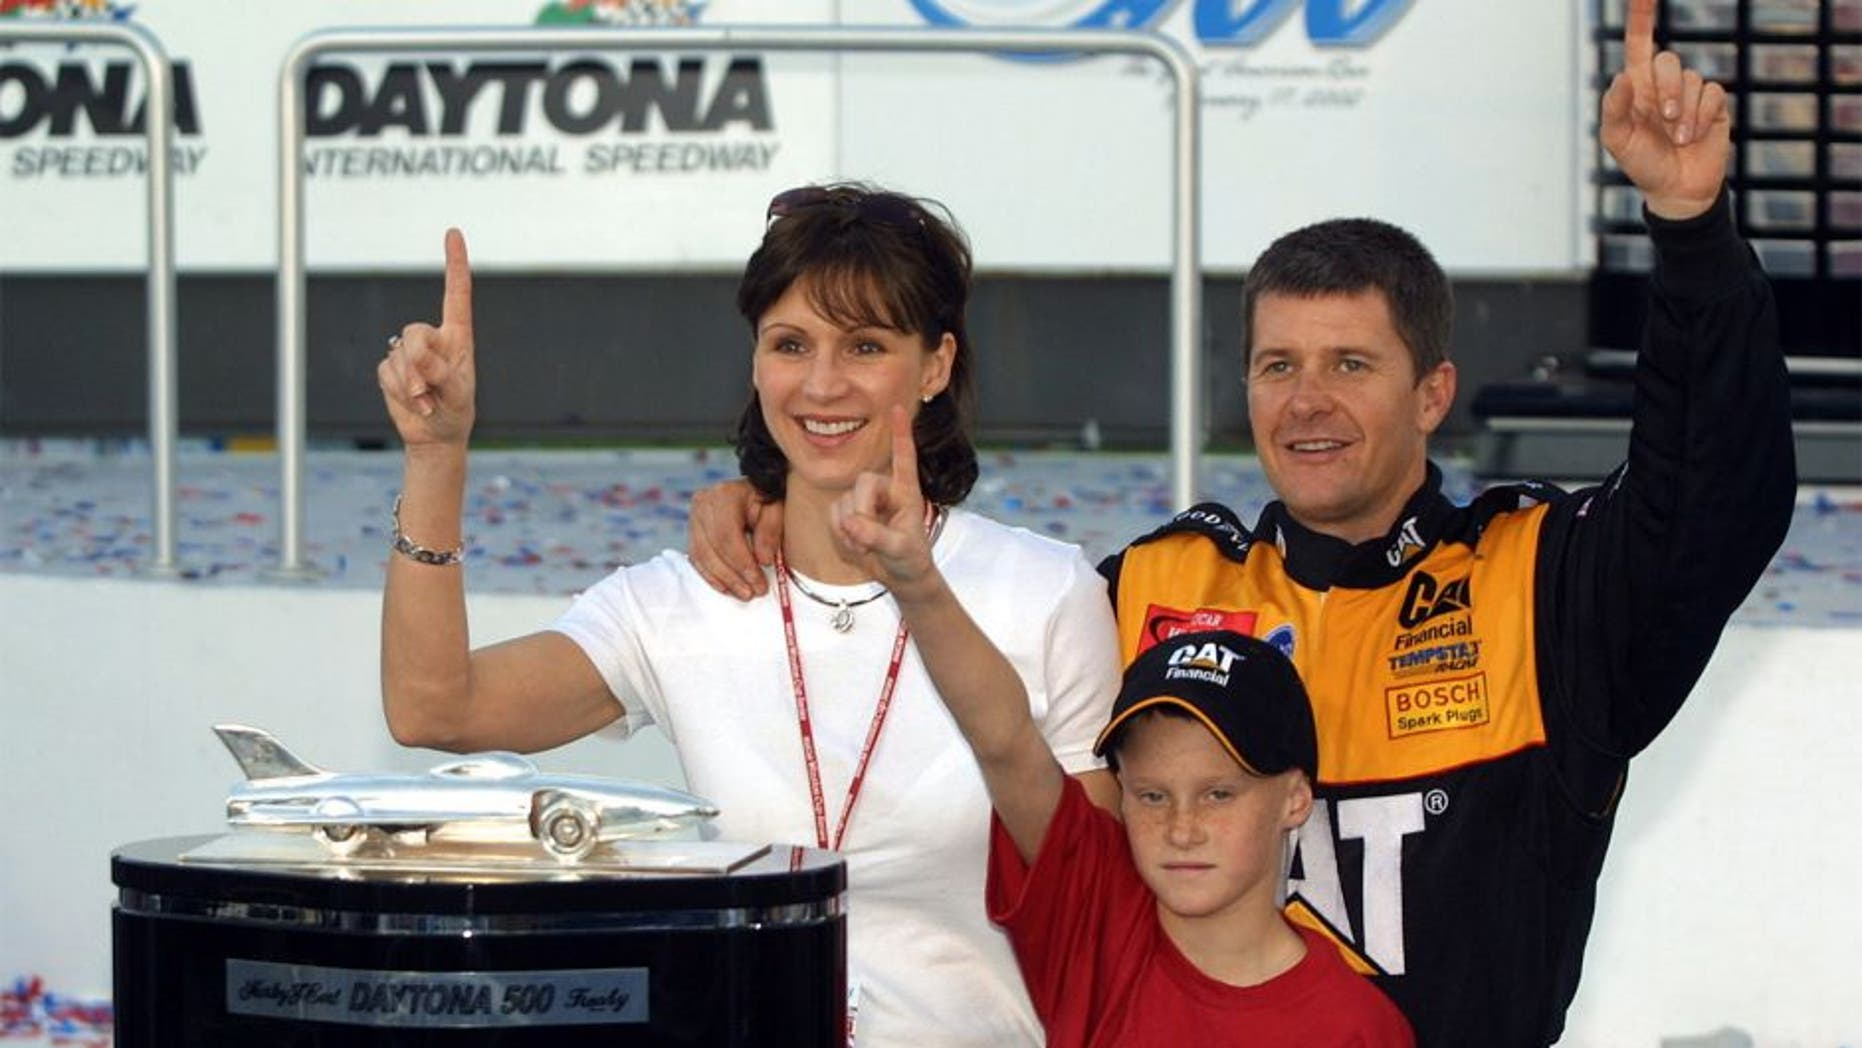 Winner Ward Burton with wife Tabitha and son Jeb in victory lane (Photo by Kevin Kane/WireImage)